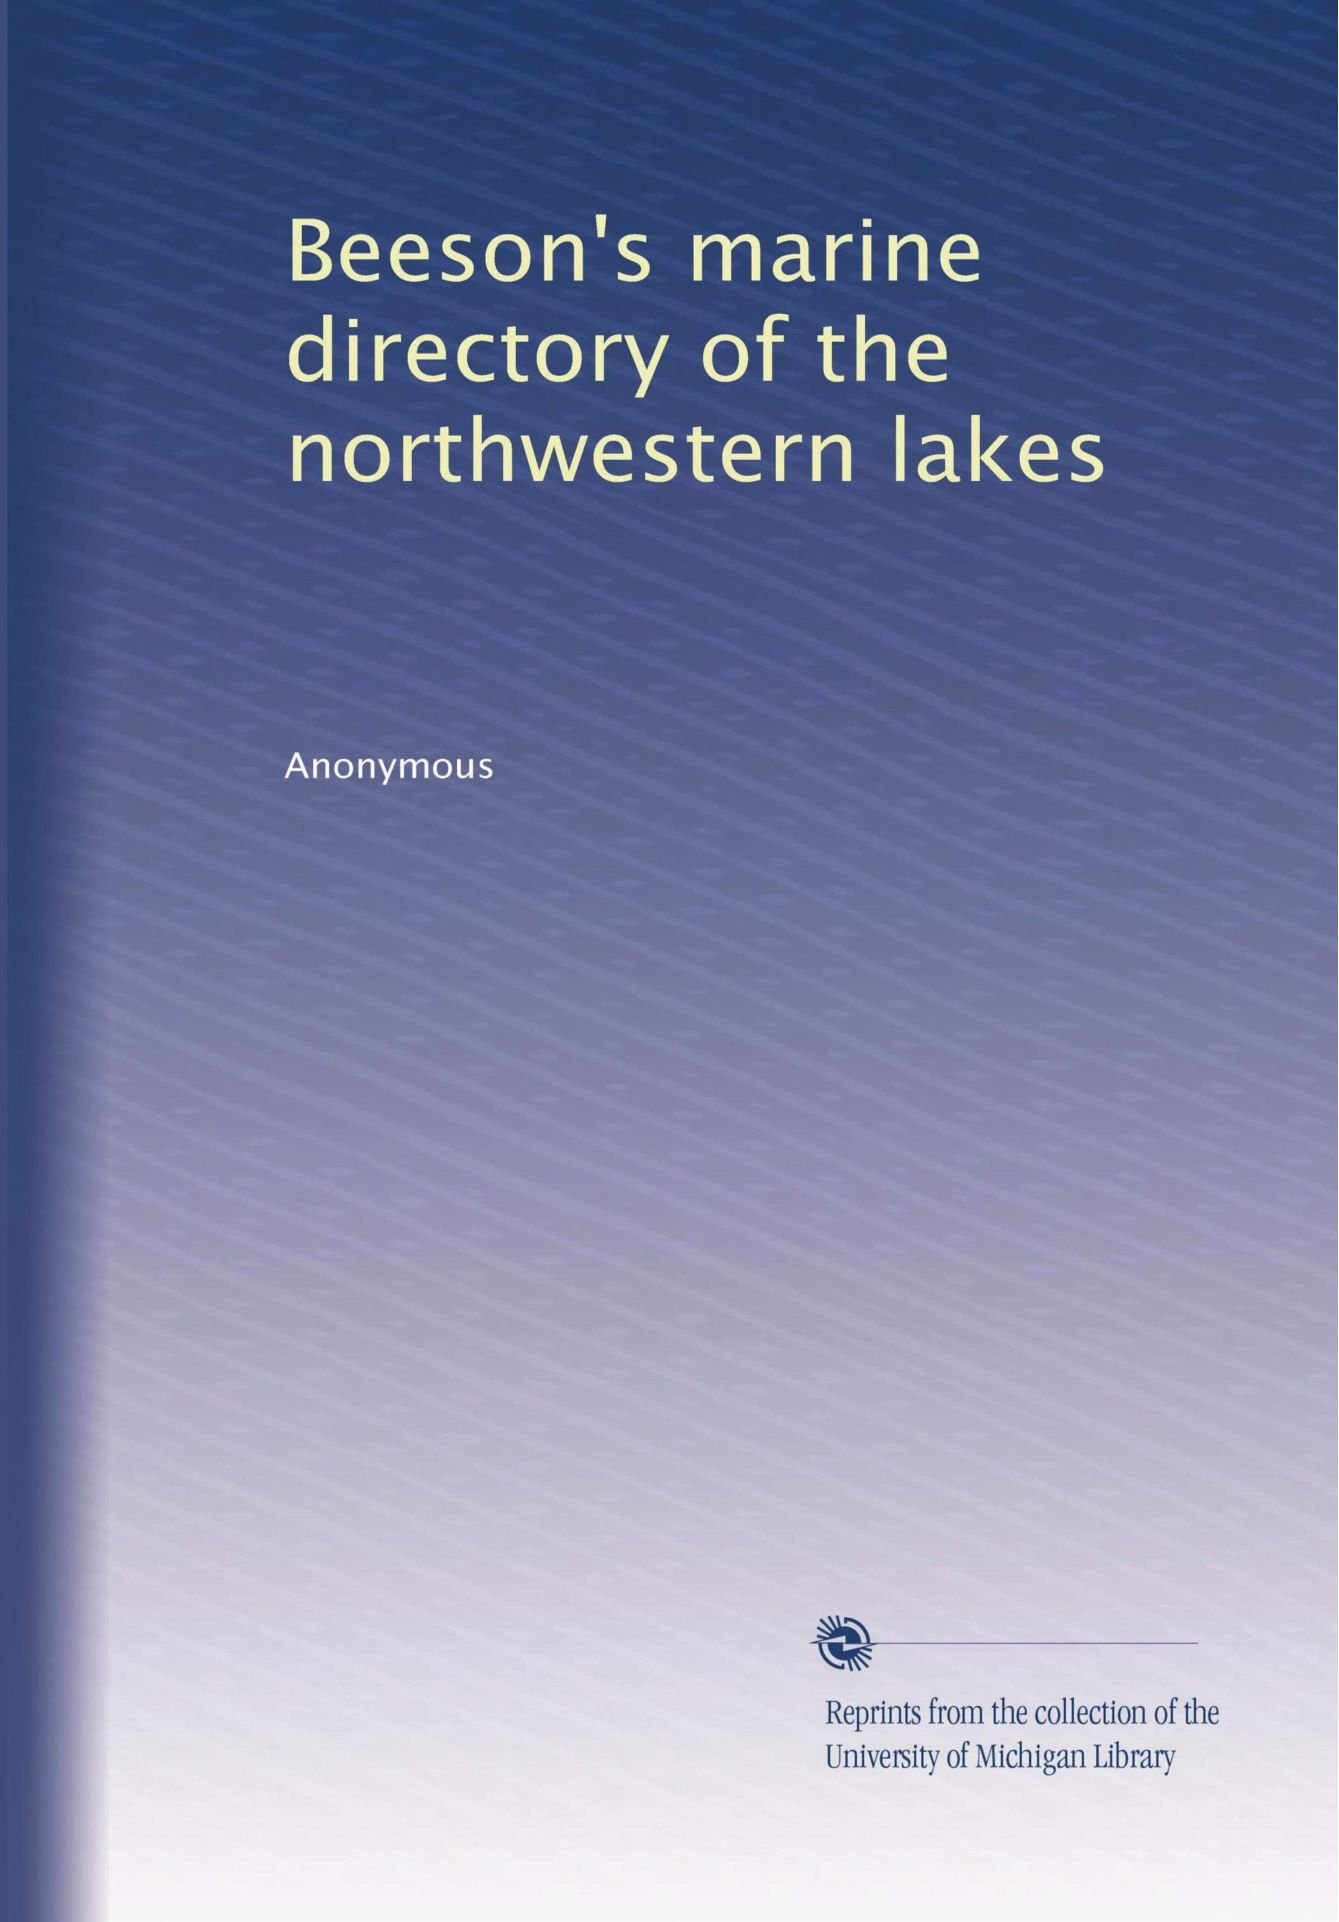 Download Beeson's marine directory of the northwestern lakes (Volume 7) PDF